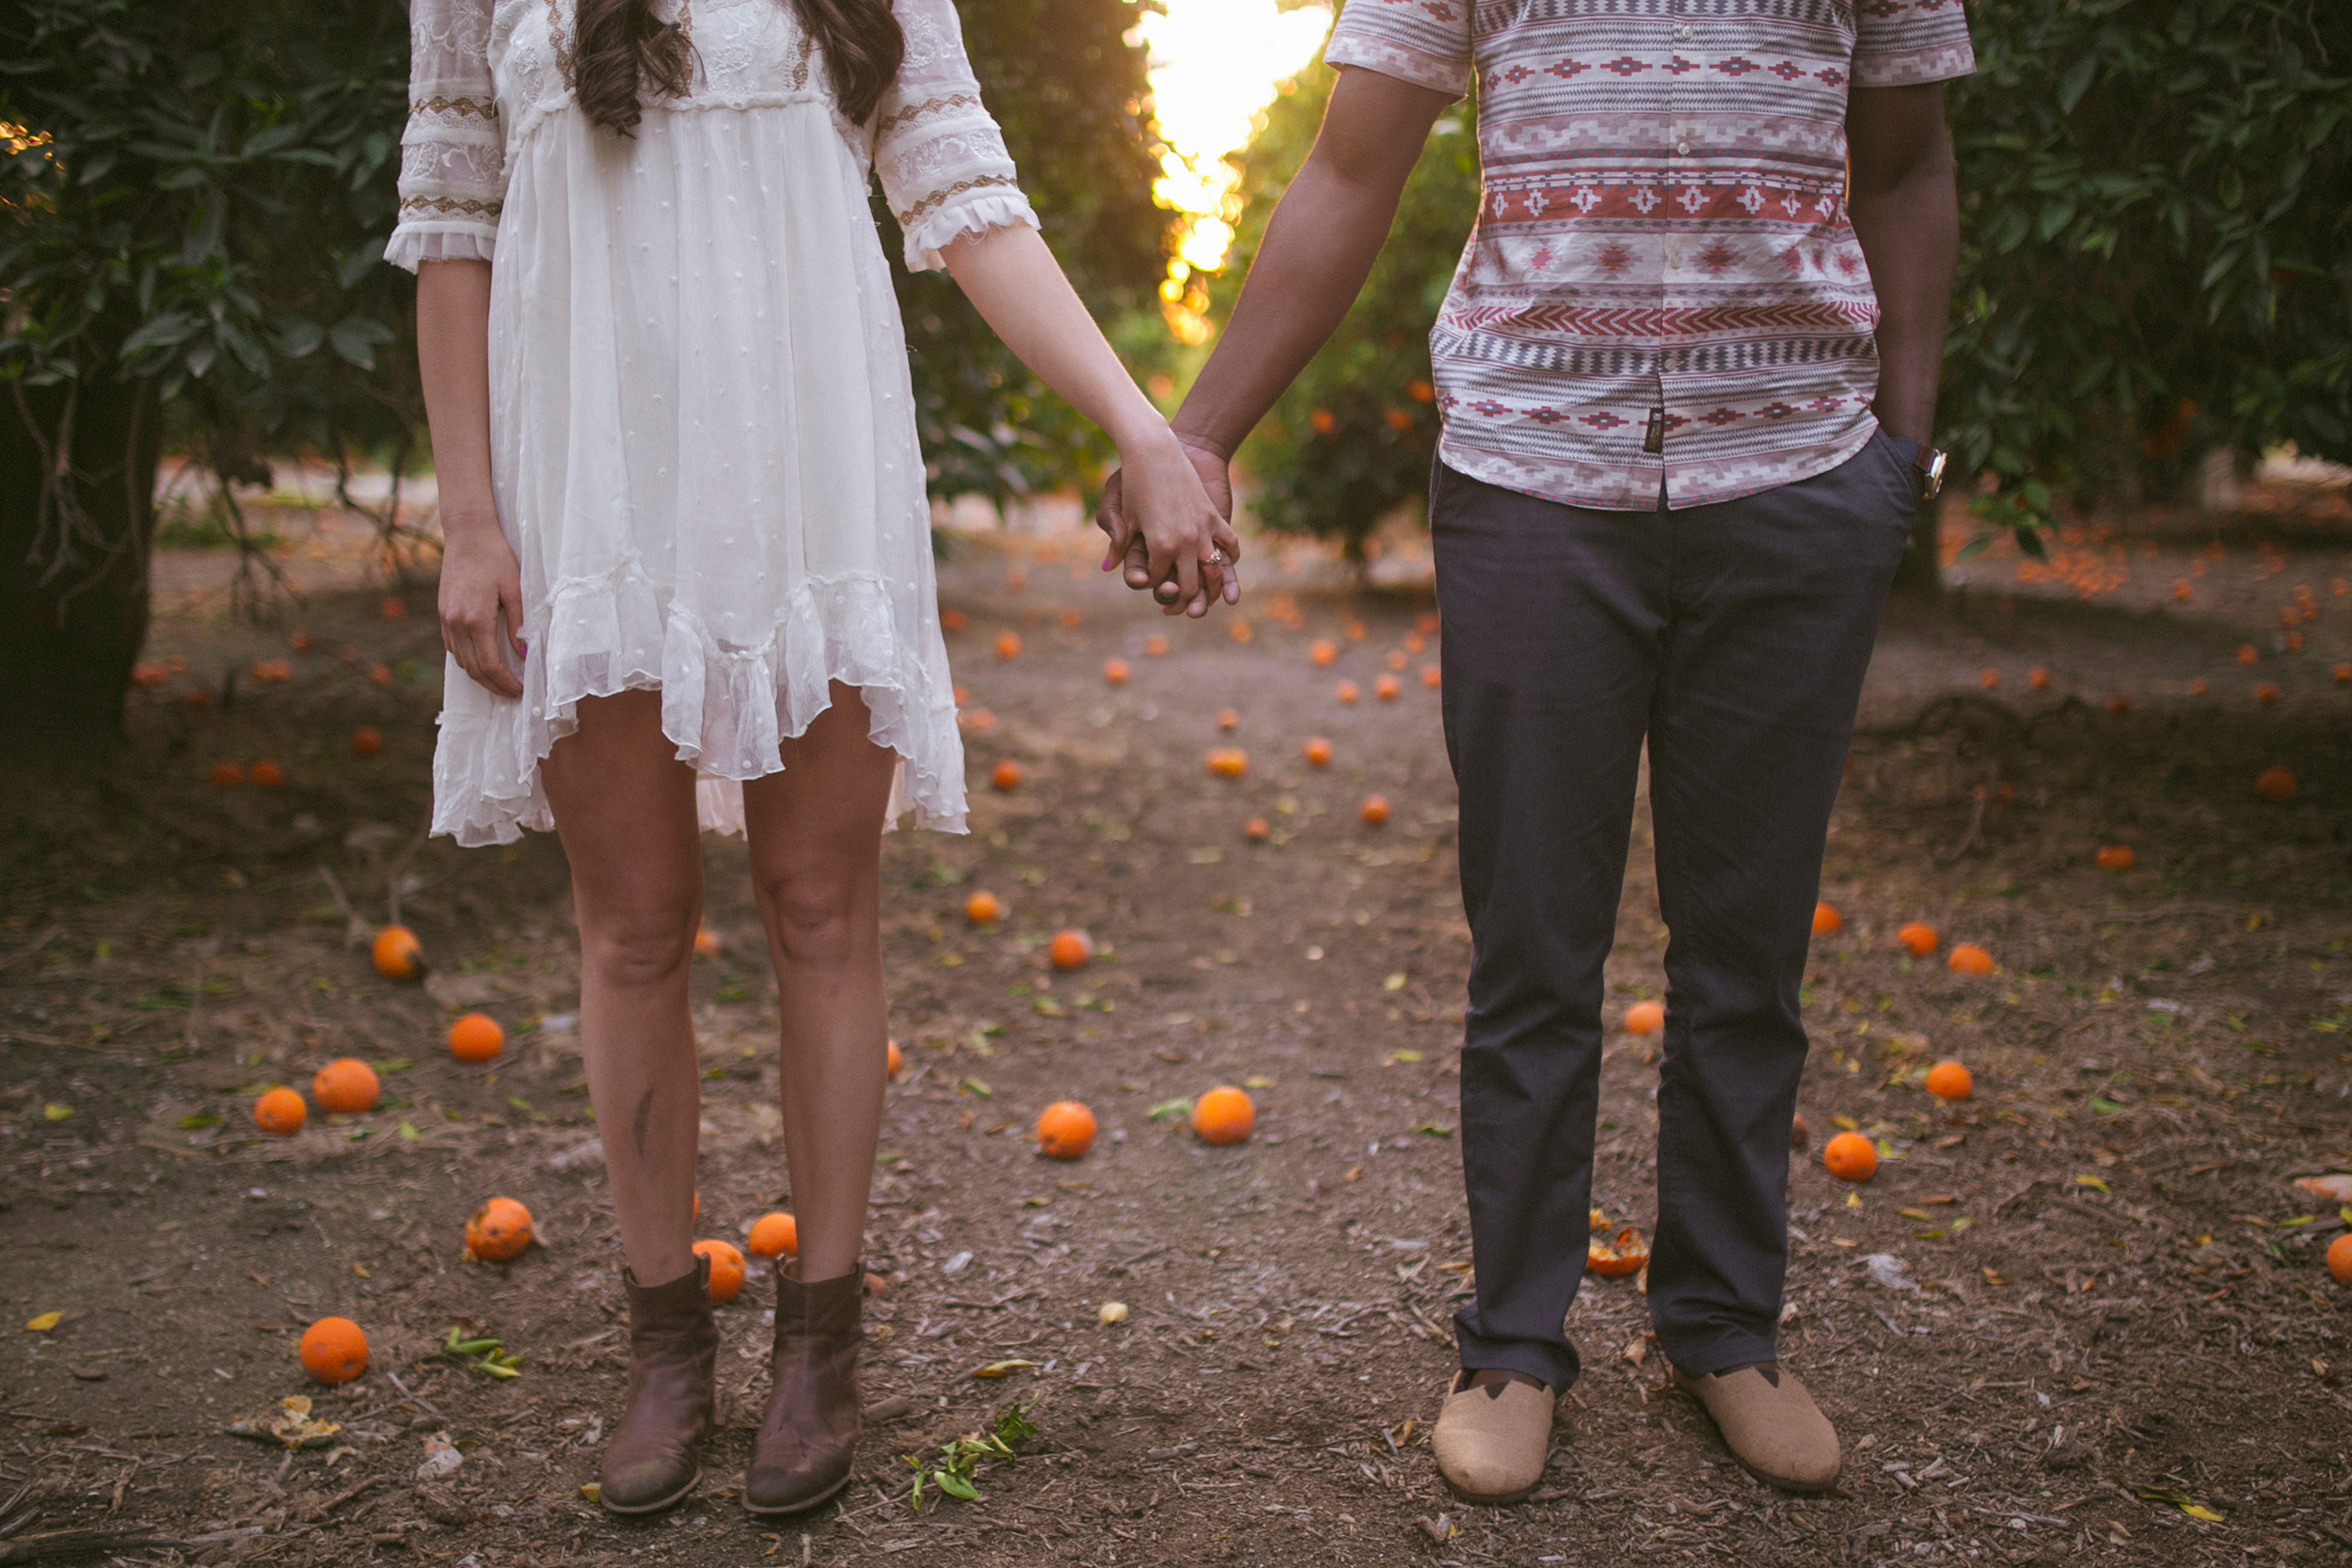 Colby-and-Jess-Adventure-Engagement-Photography-Orange-Grove-San-Bernardino-California304.jpg